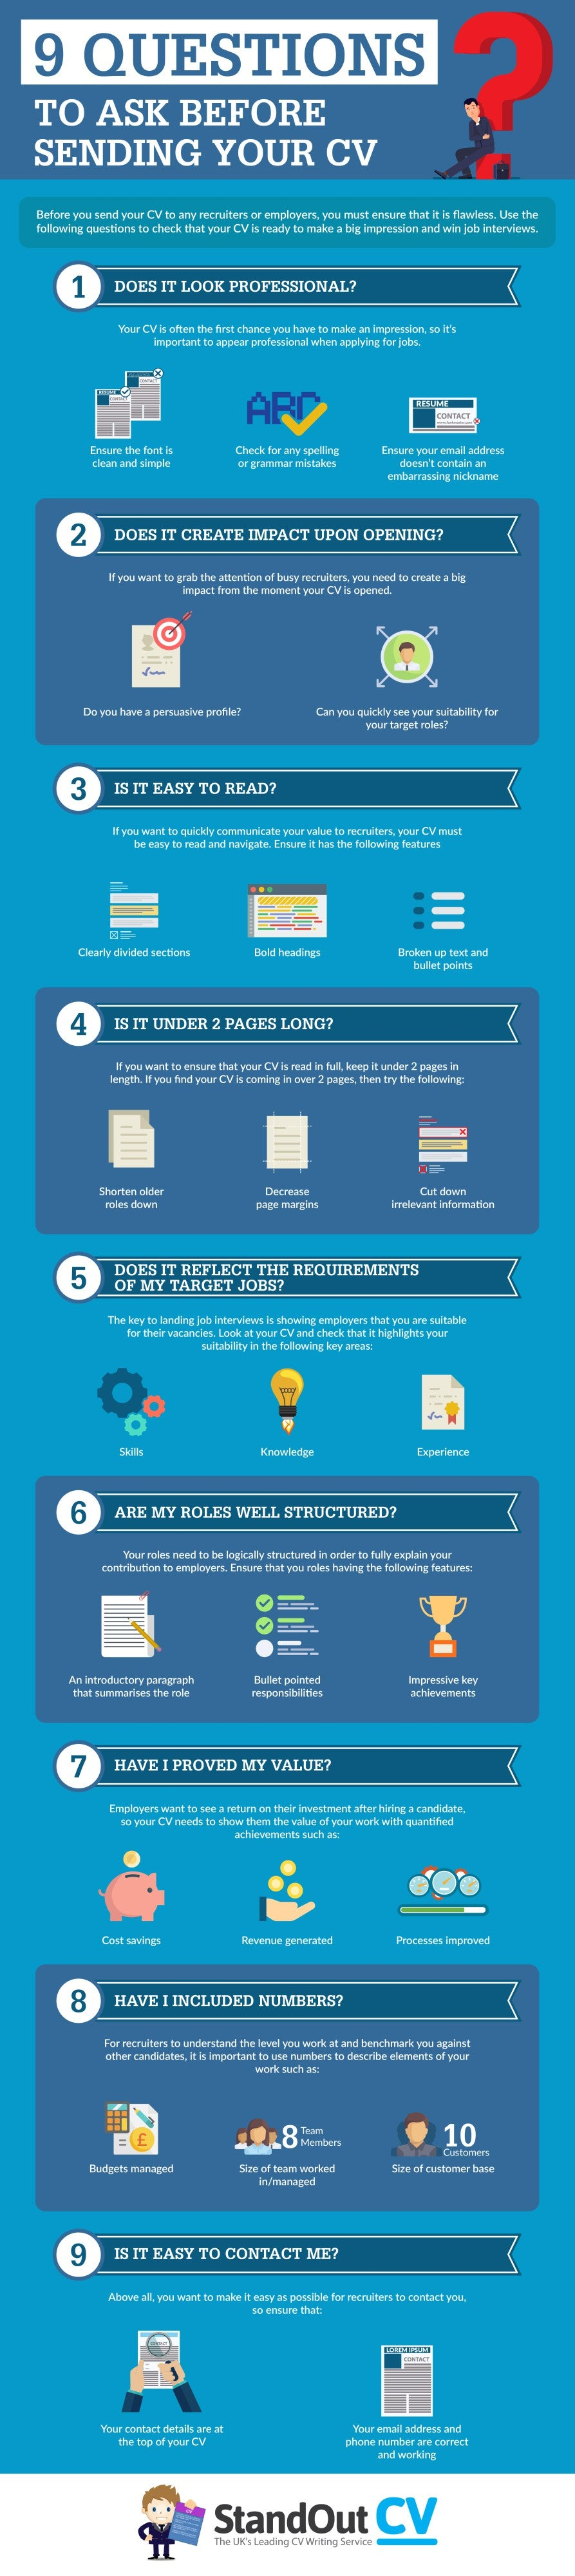 9 questions to ask before sending your cv margaret buj cv template